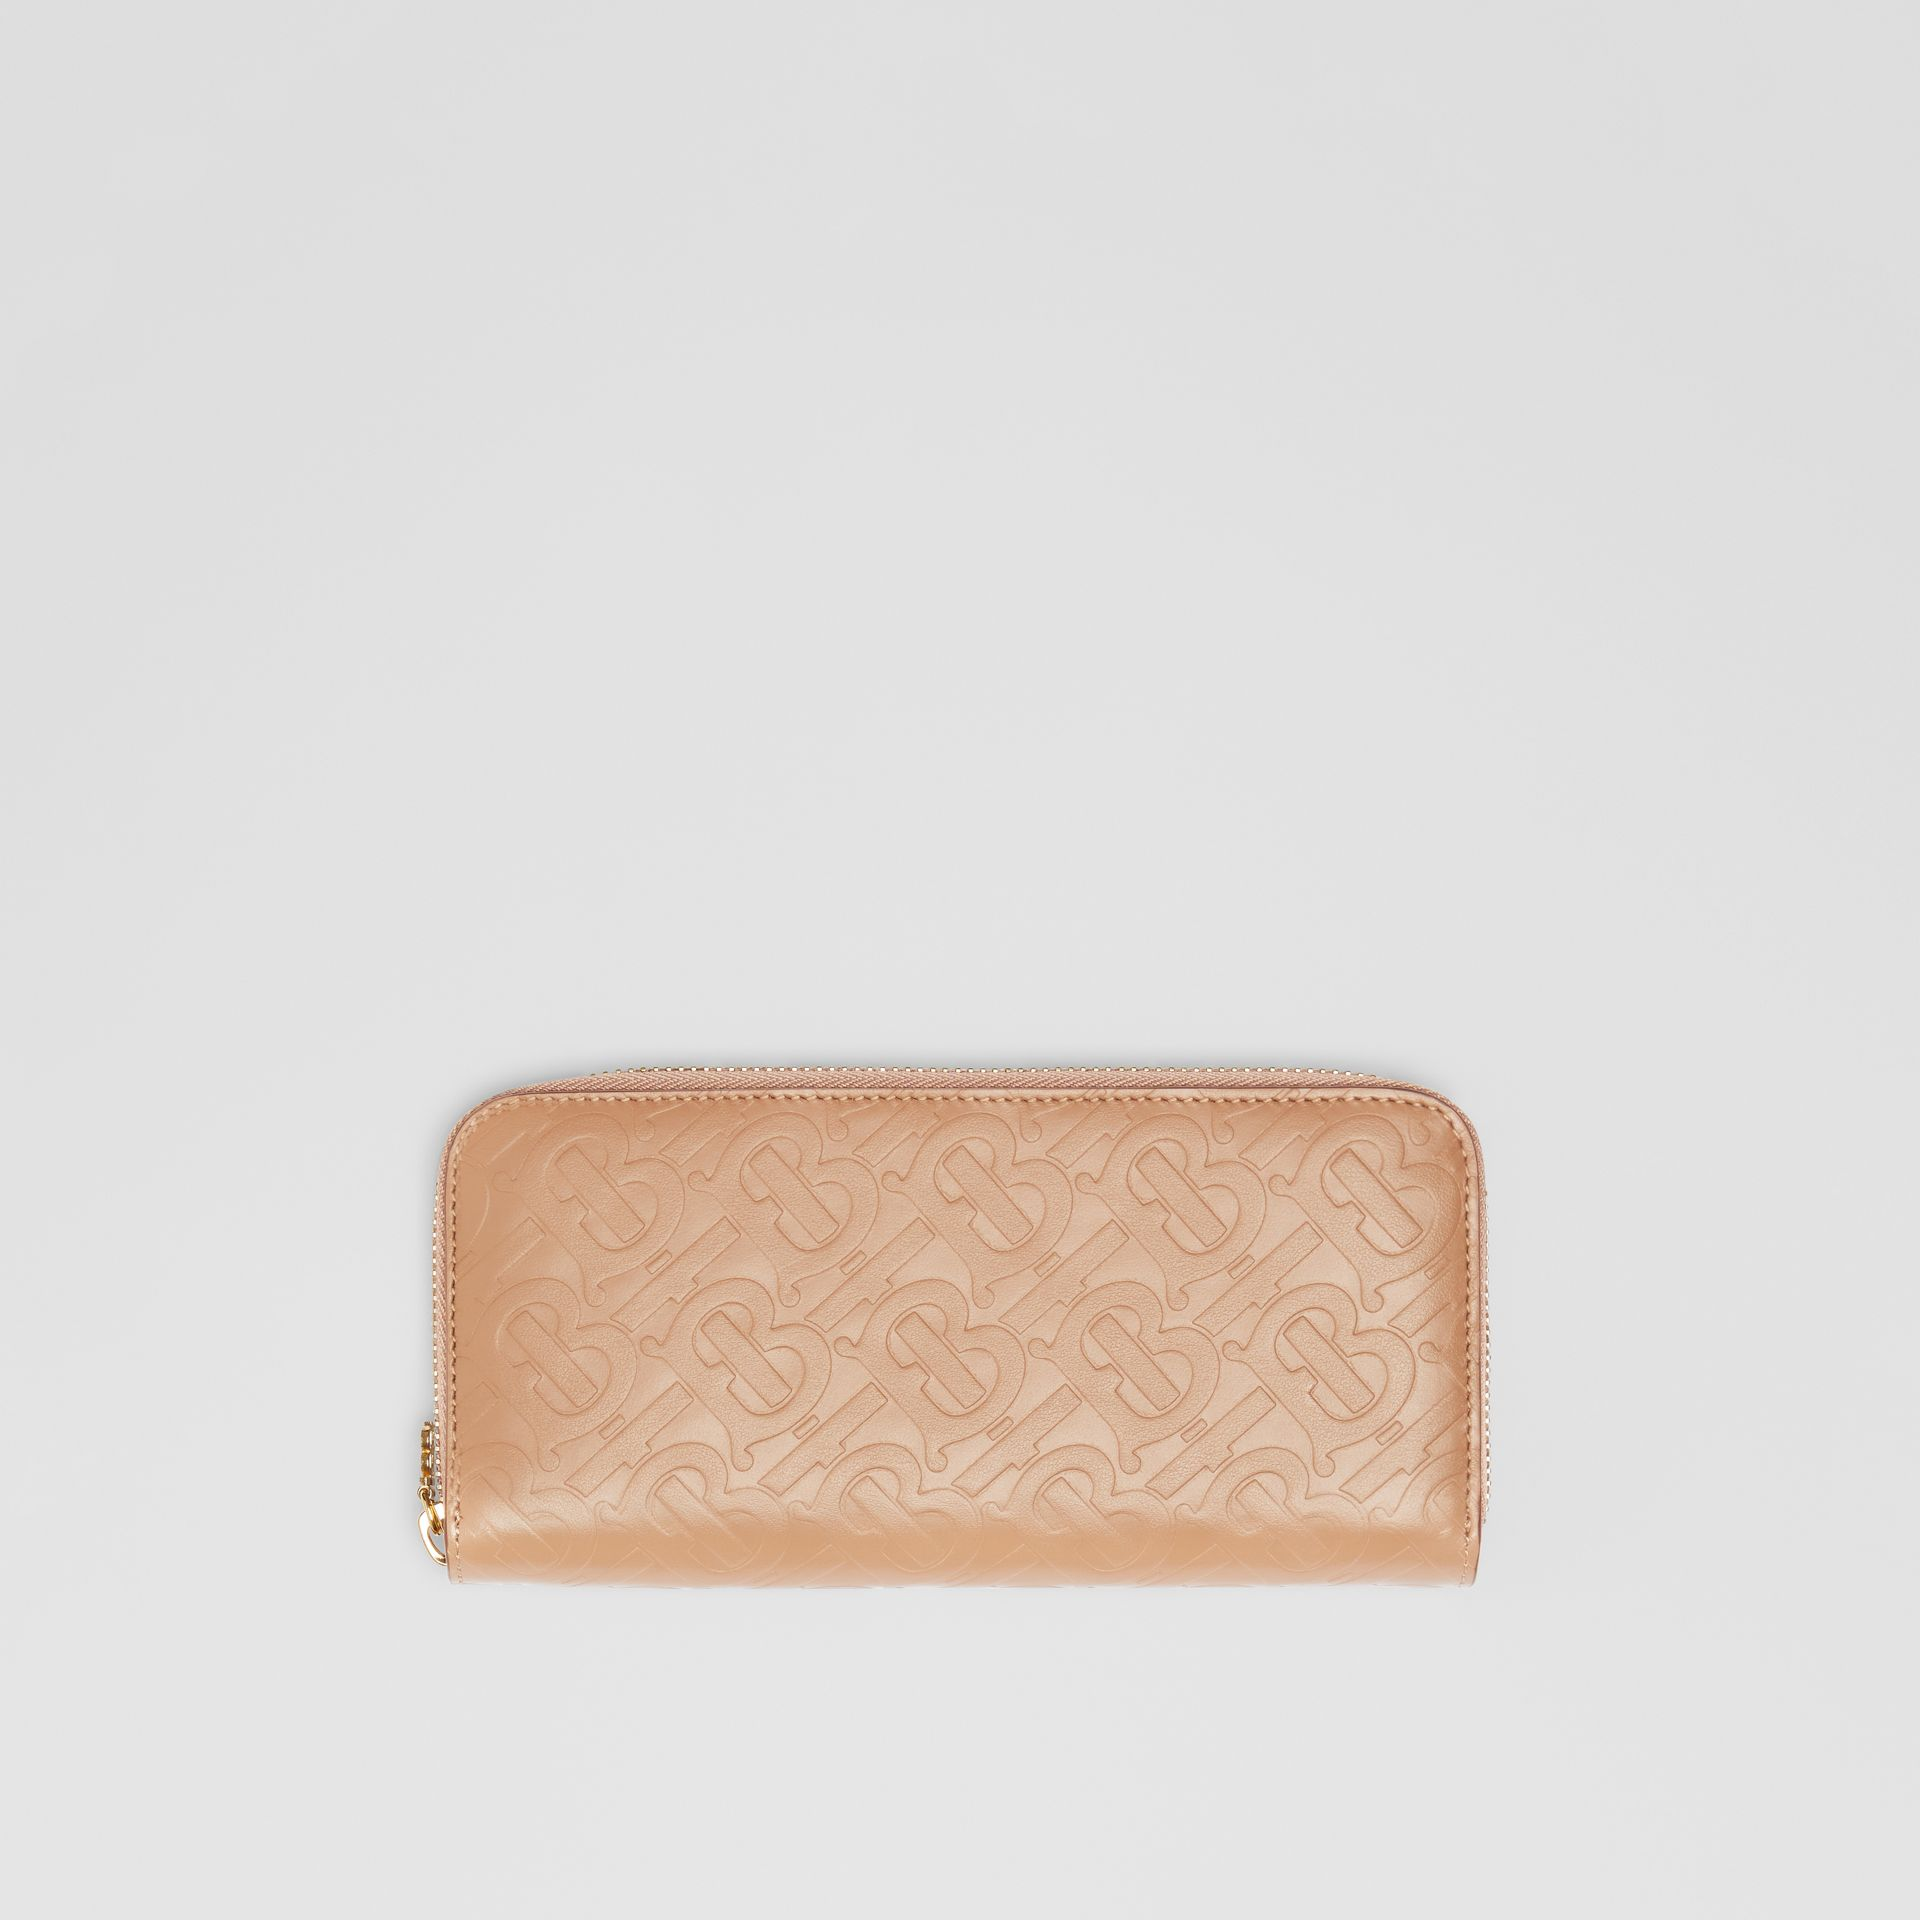 Monogram Leather Ziparound Wallet in Light Camel - Women | Burberry United Kingdom - gallery image 0